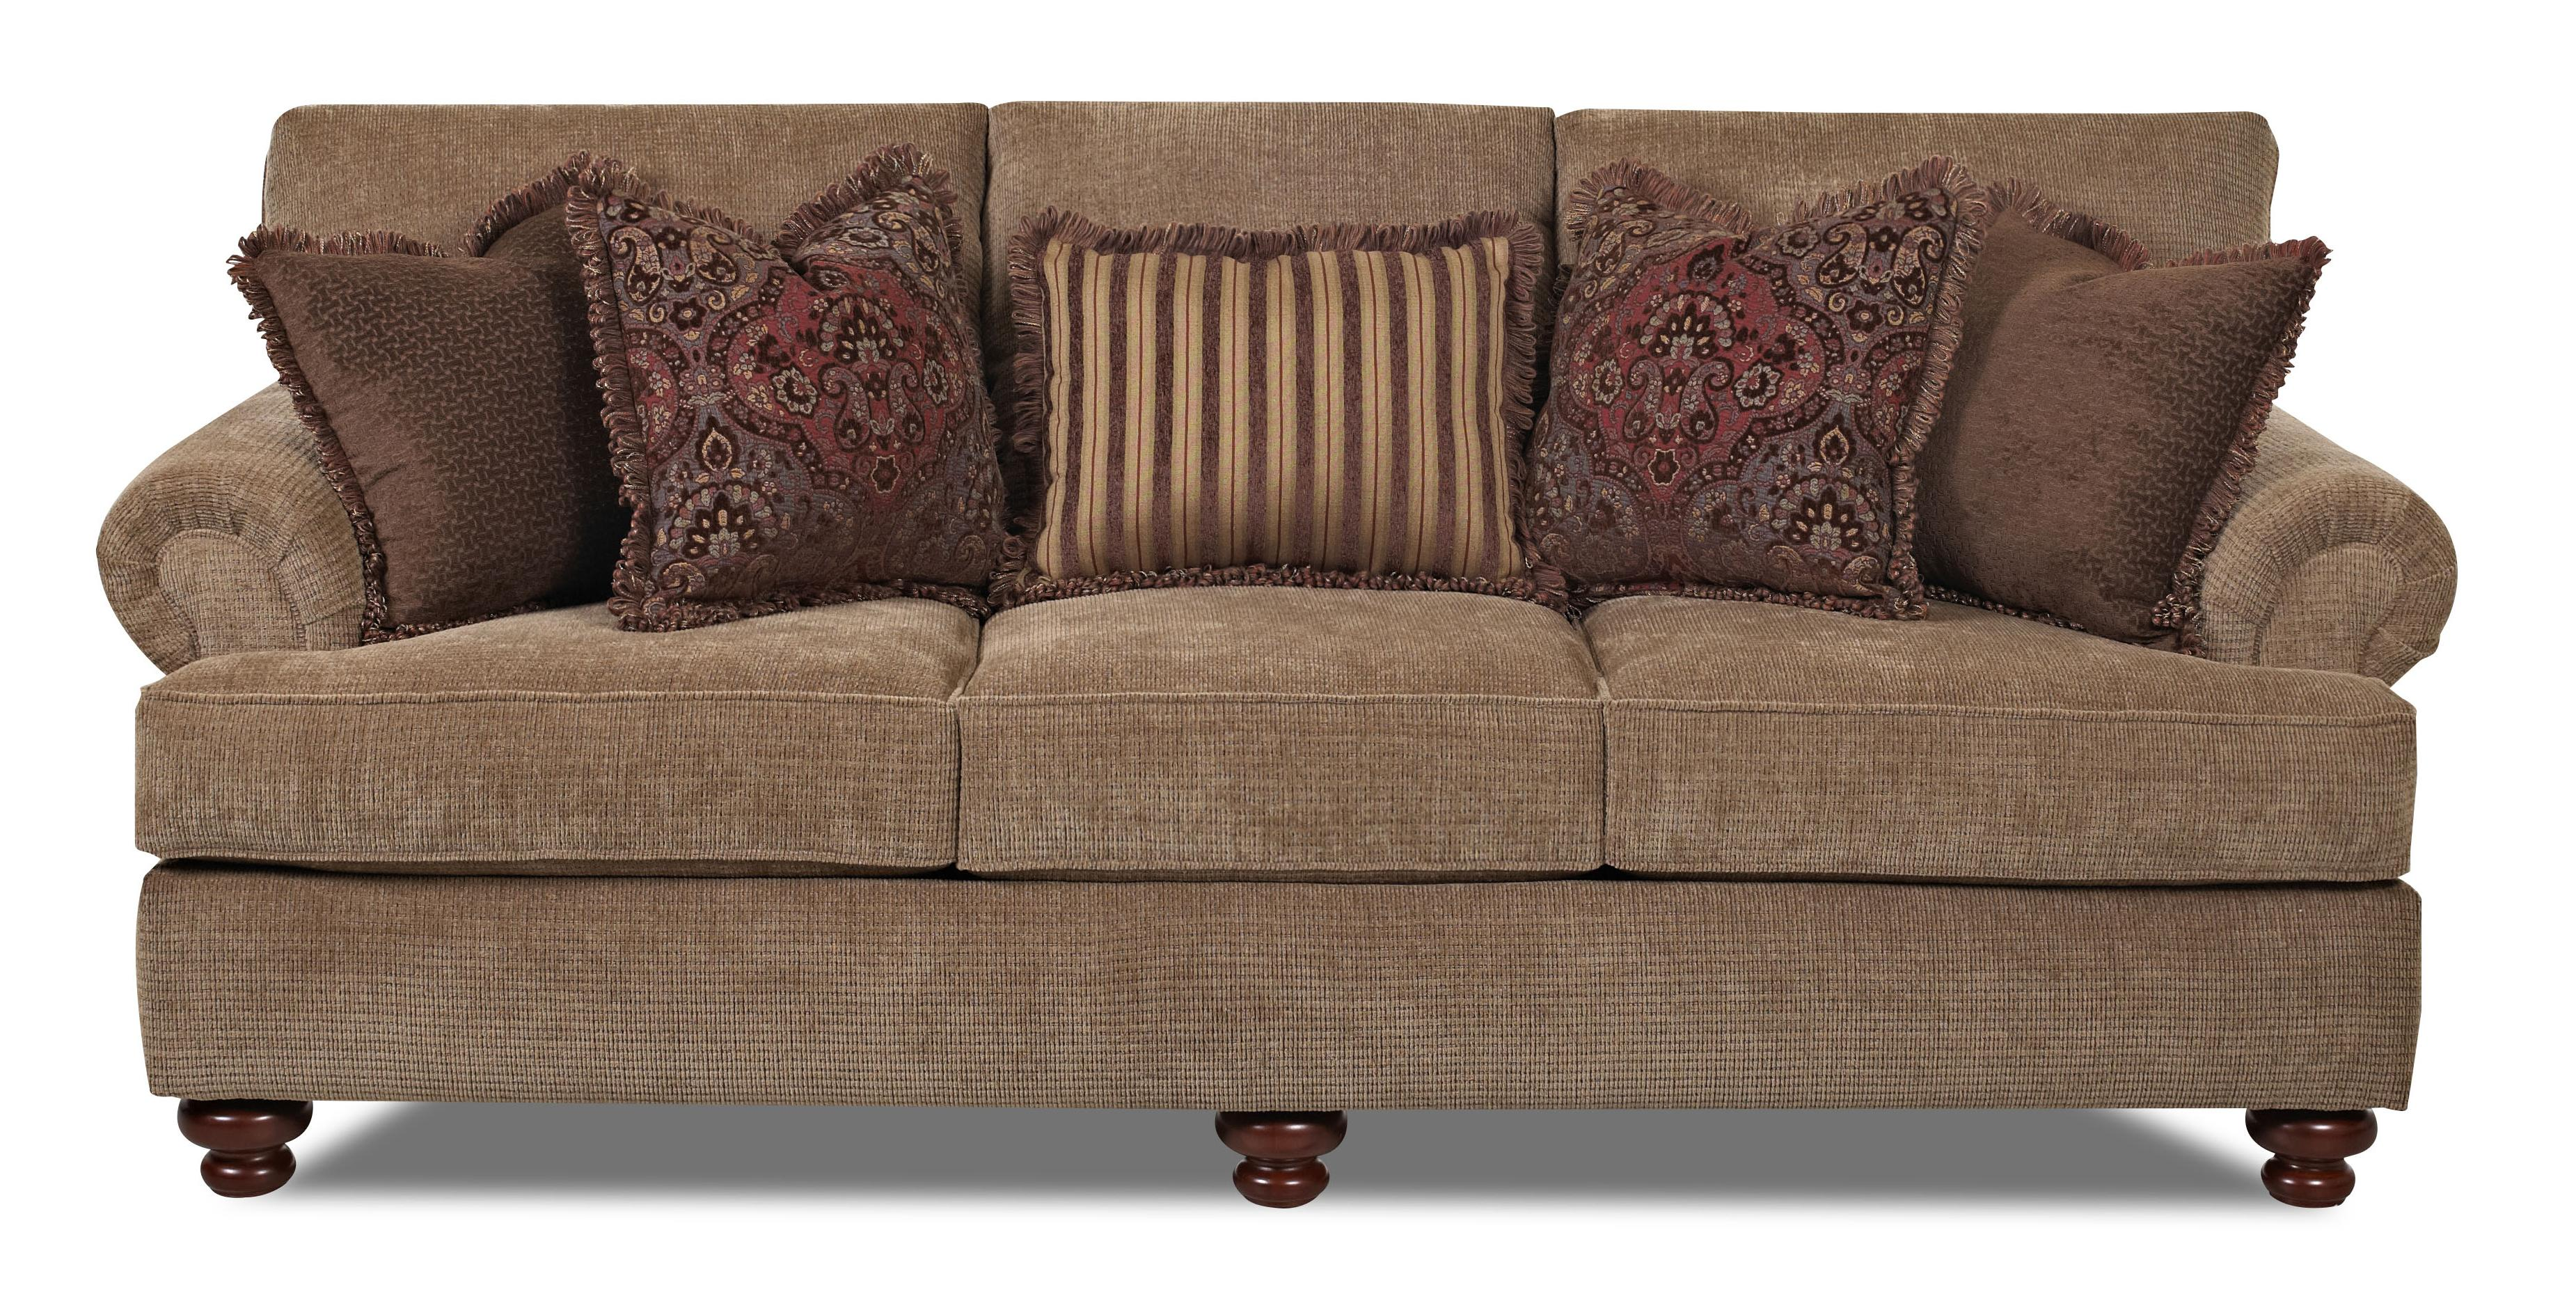 Klaussner greenvale traditional stationary sofa with for Klaussner sofa